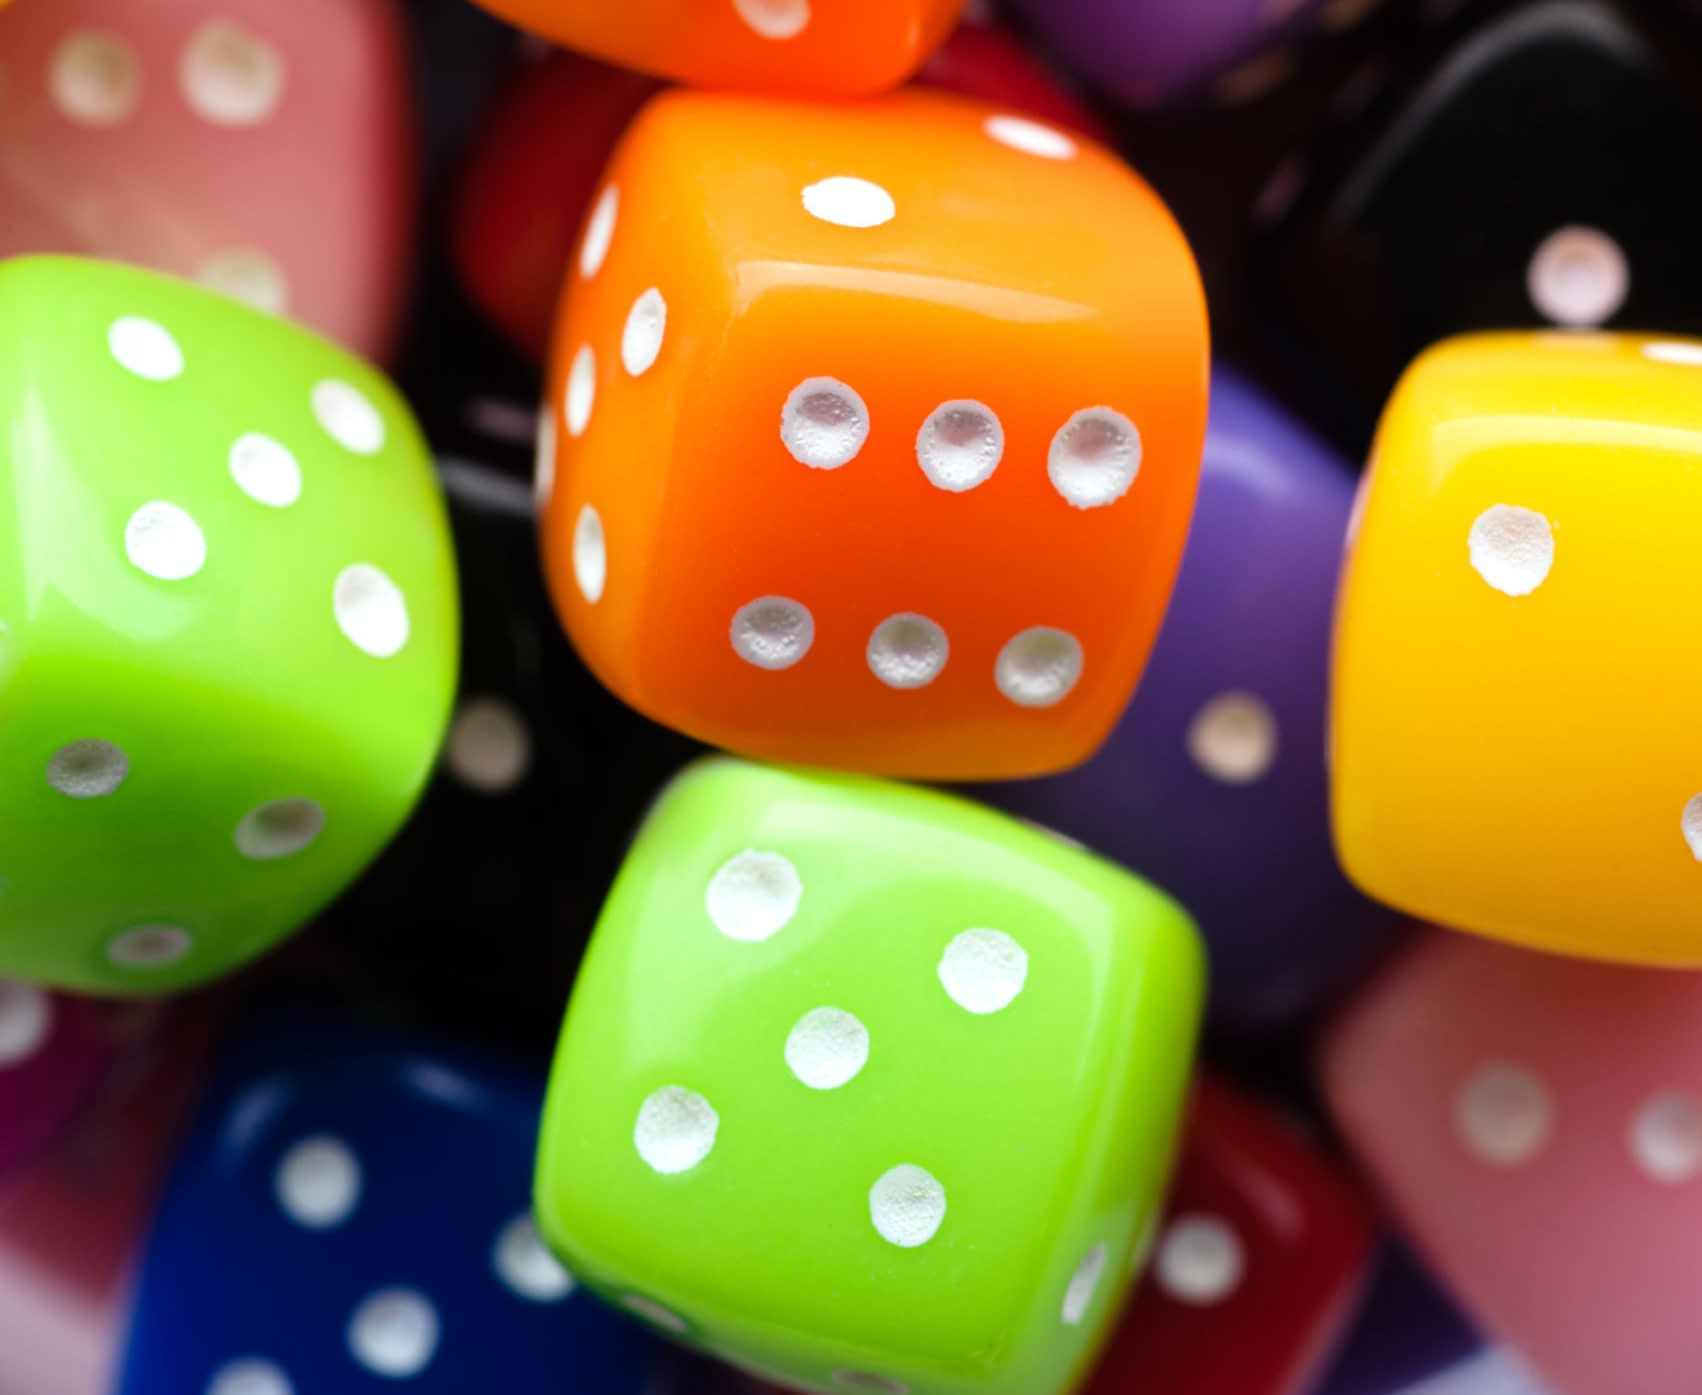 Assorted multicolor dices, close-up shot, abstract gambling background